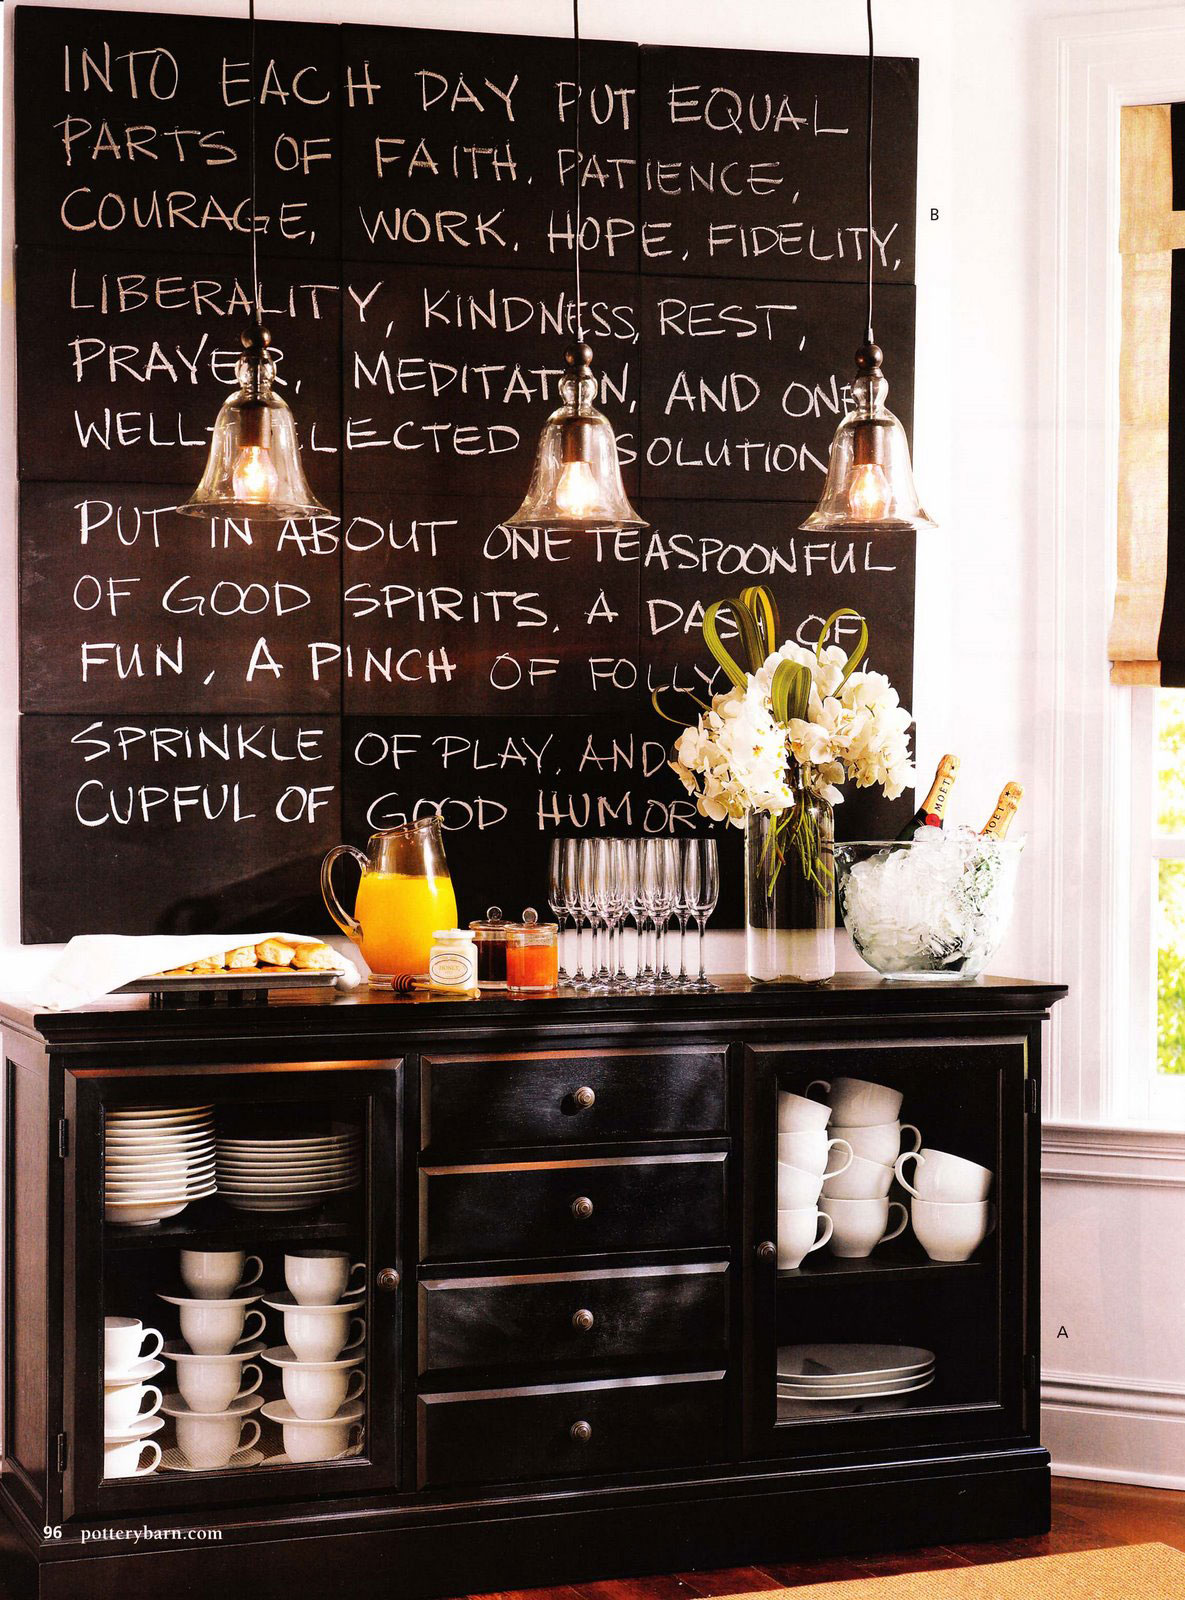 artistic-for-chalkboard-paint-on-wall.jpg